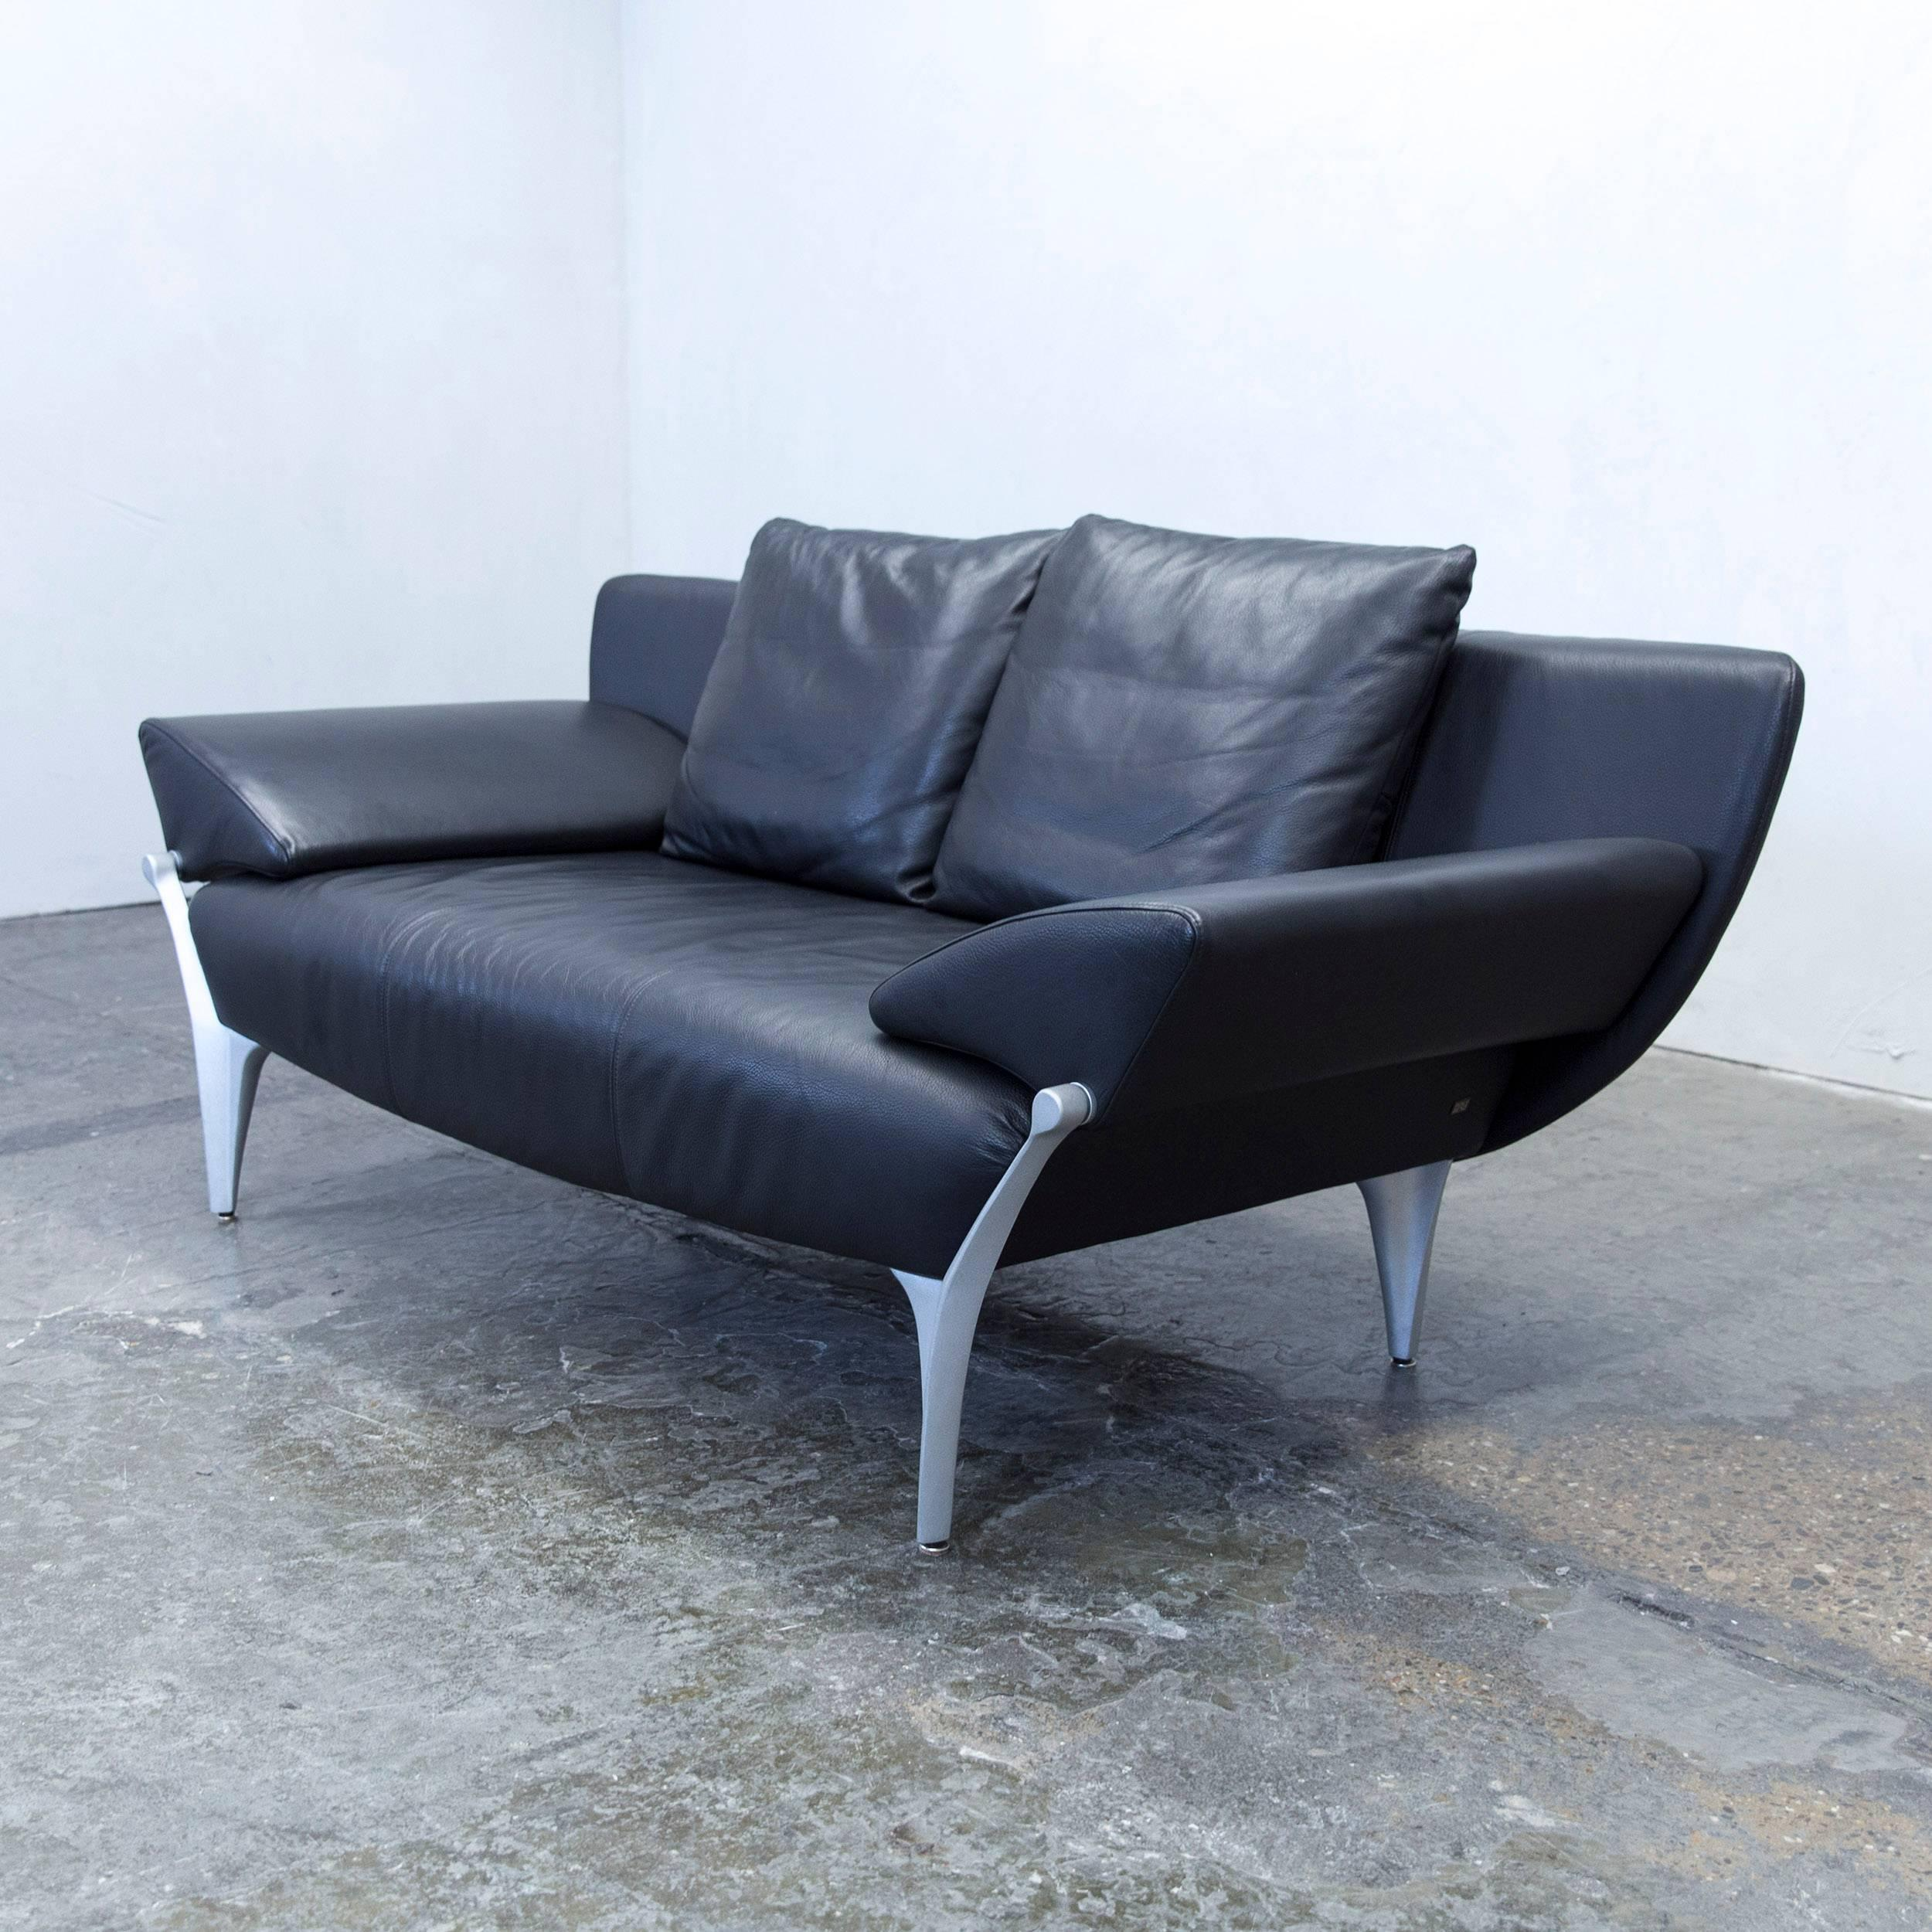 Sofa Leder. Top Ikea Sofa Leder Sofa Covers Also Sofa Prices And ...